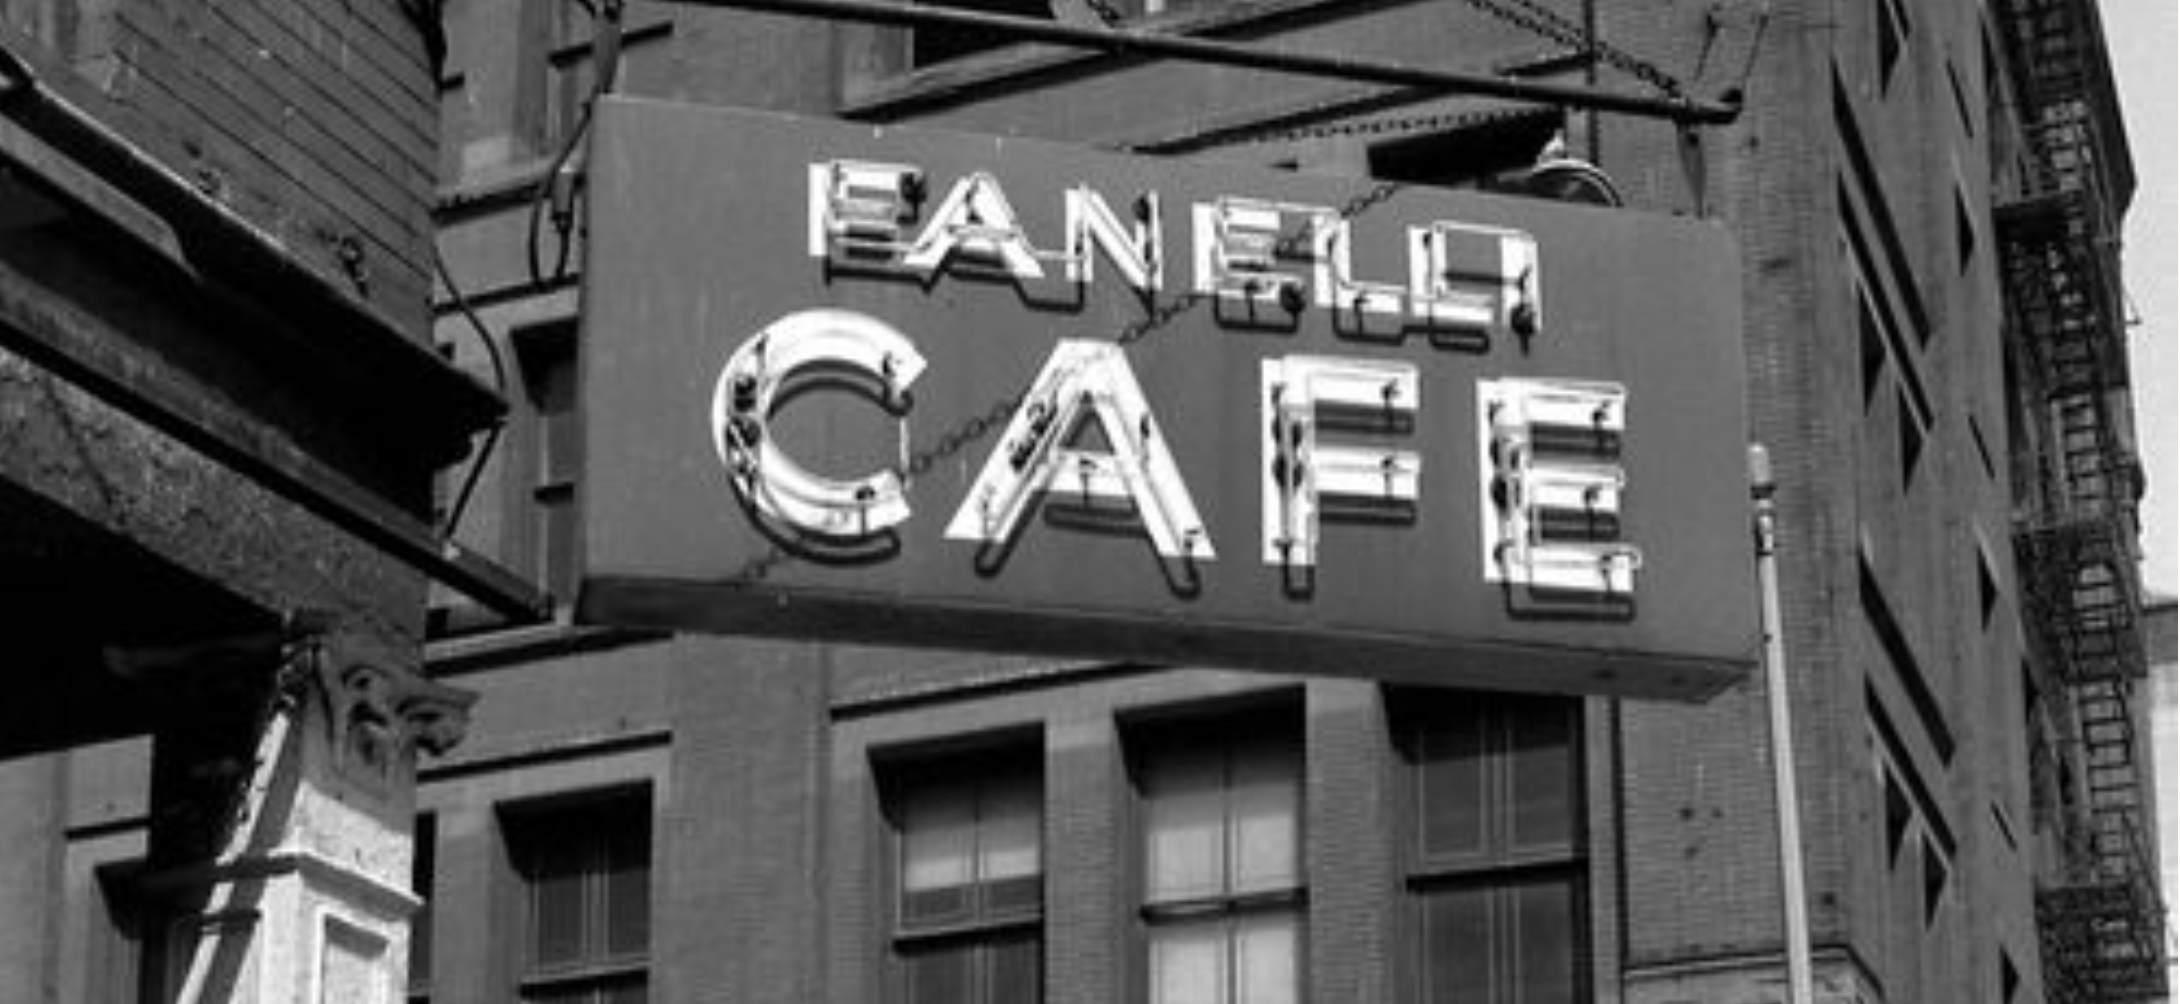 Fanelli Sign